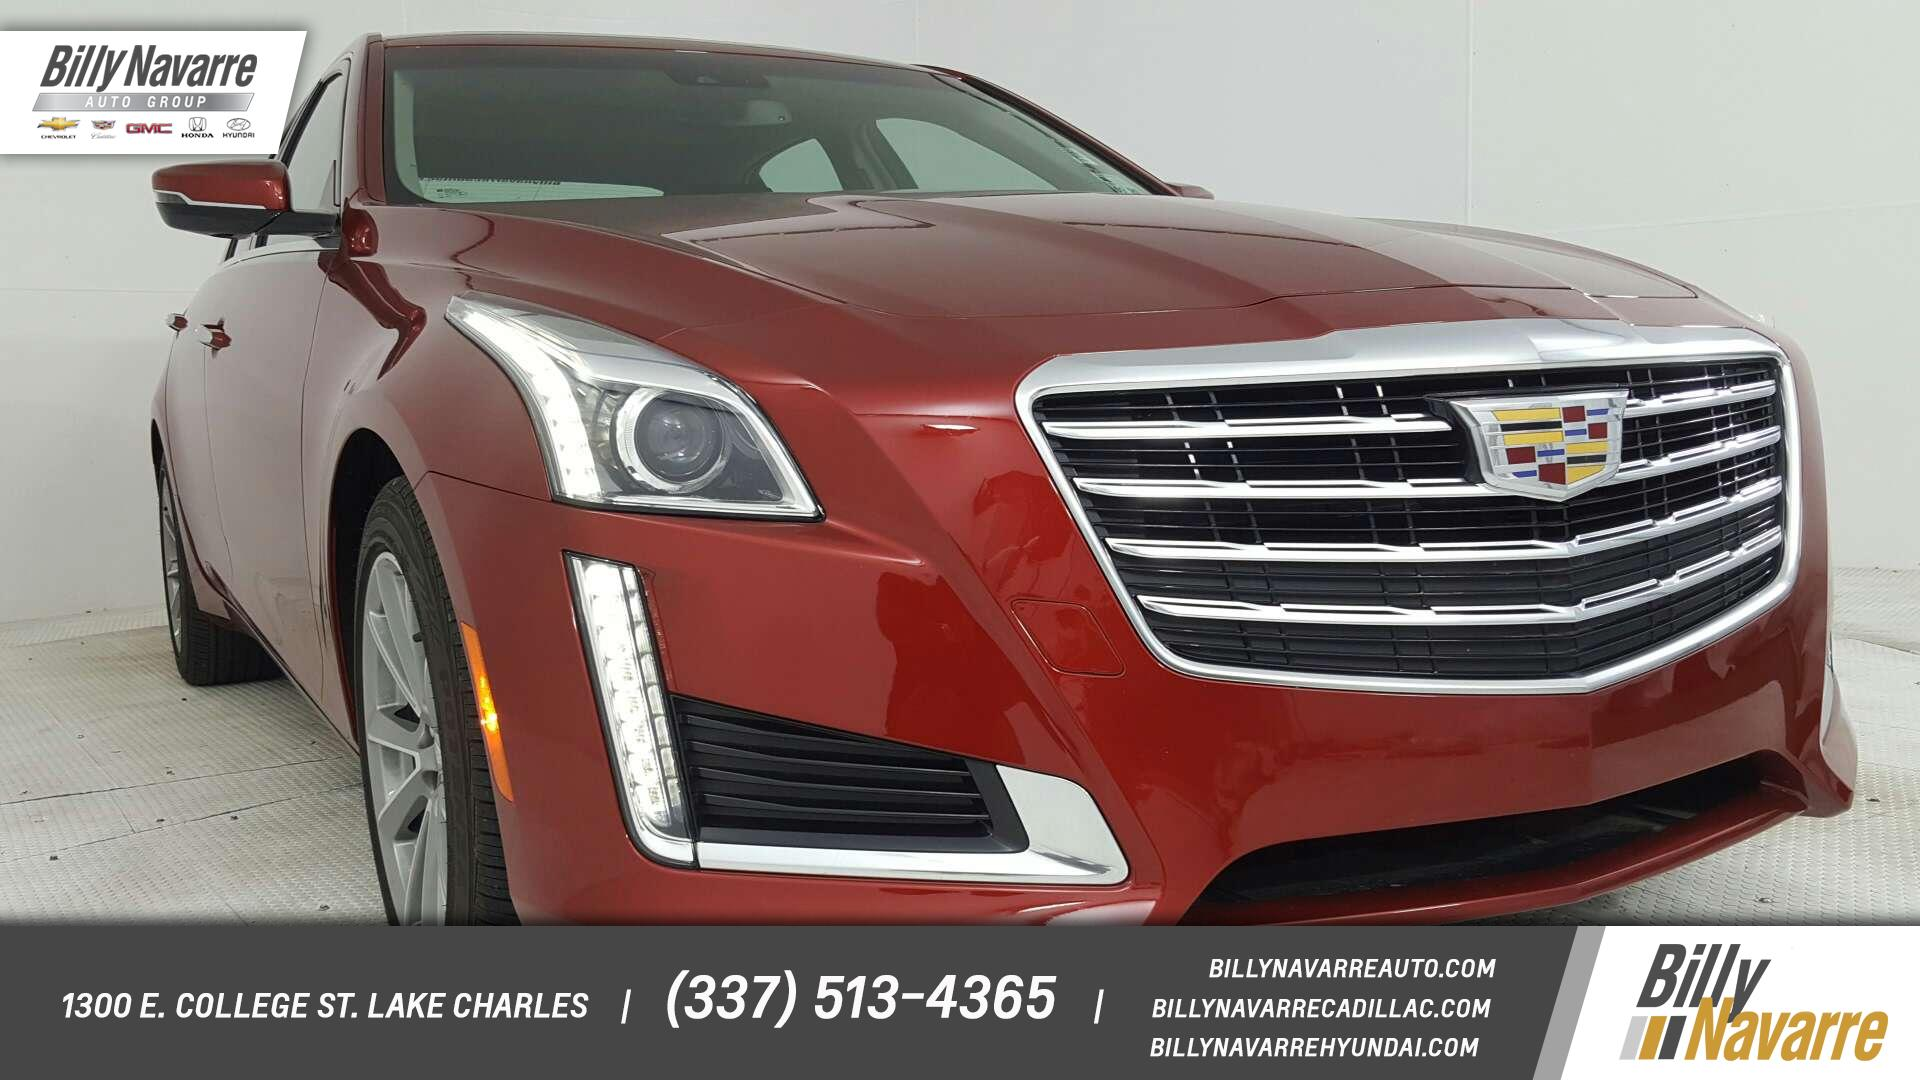 Cheap Cars For Sale In Lake Charles La >> Lake Charles Used Cadillac Vehicles For Sale